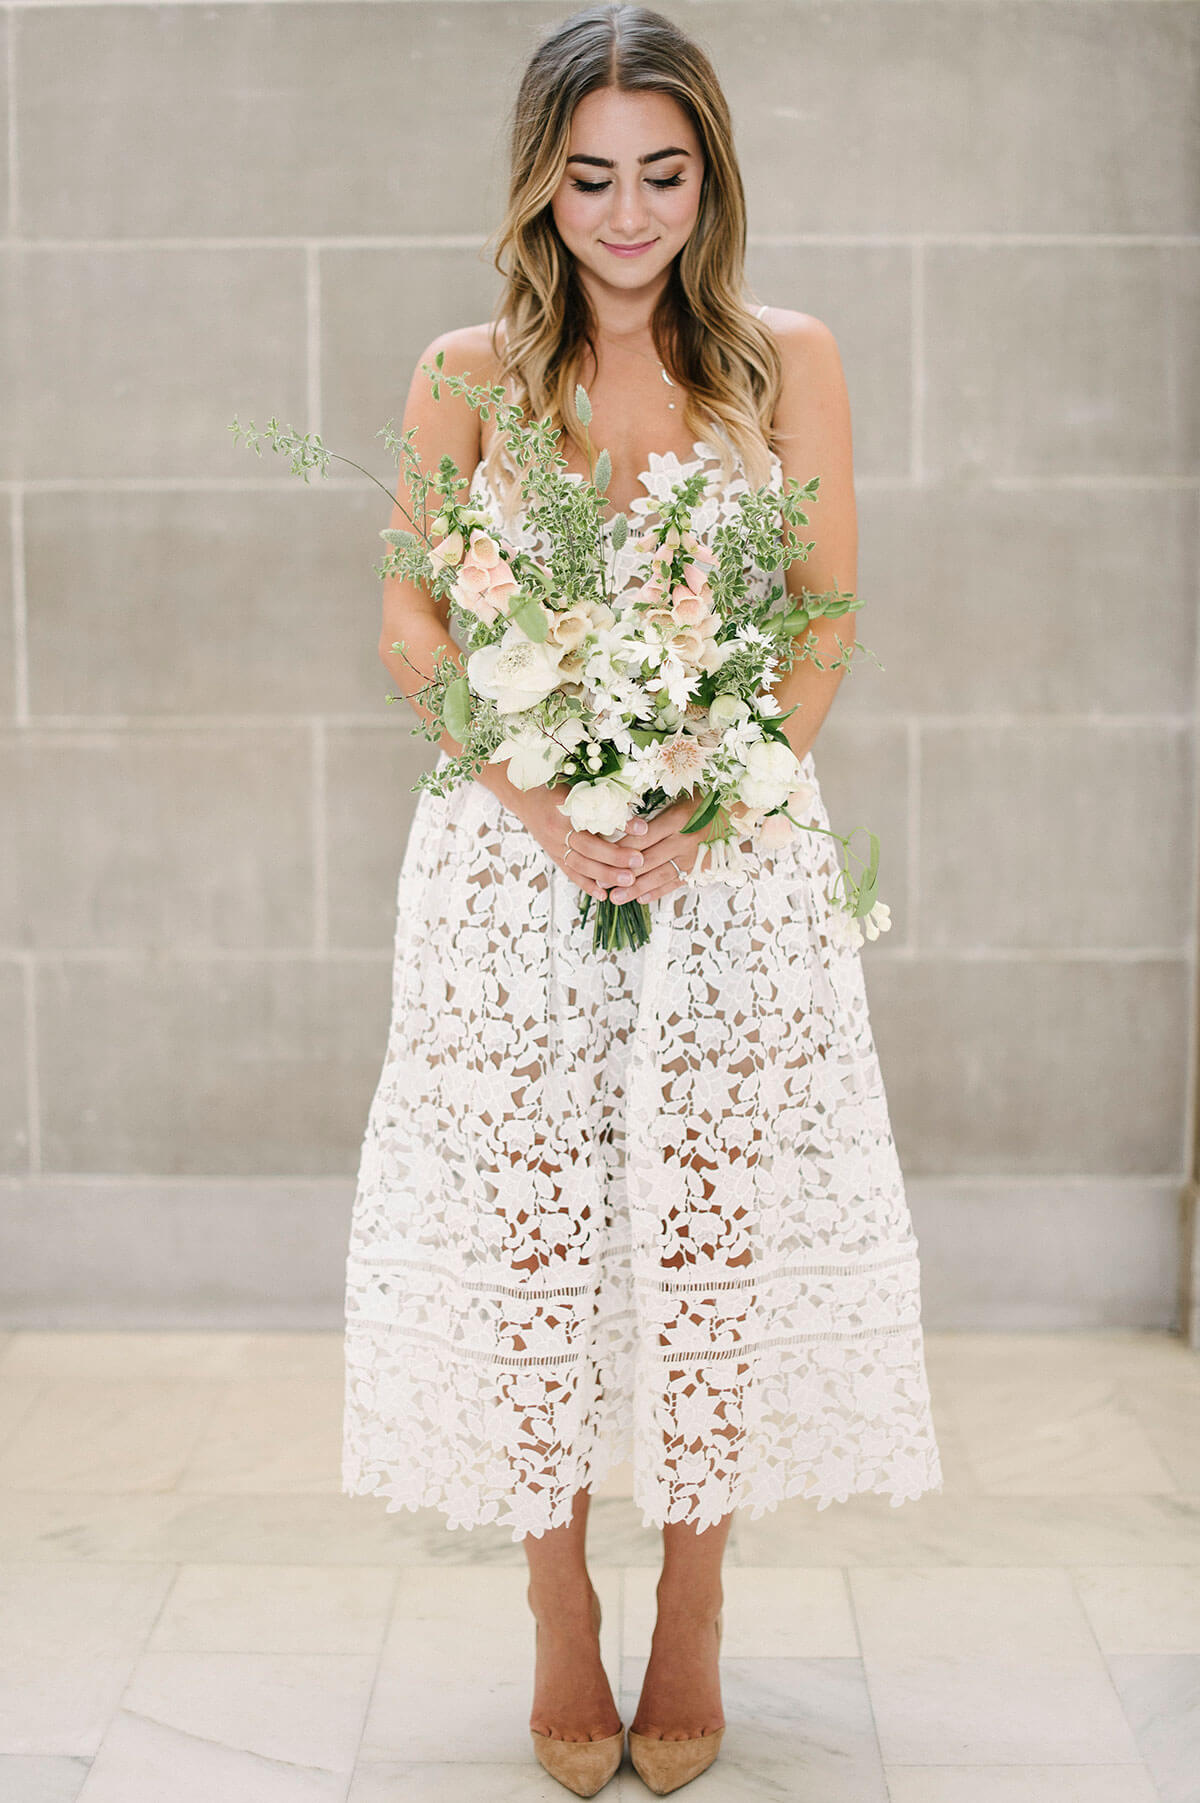 Ten city hall wedding tips melanie duerkopp for Simple dress for civil wedding